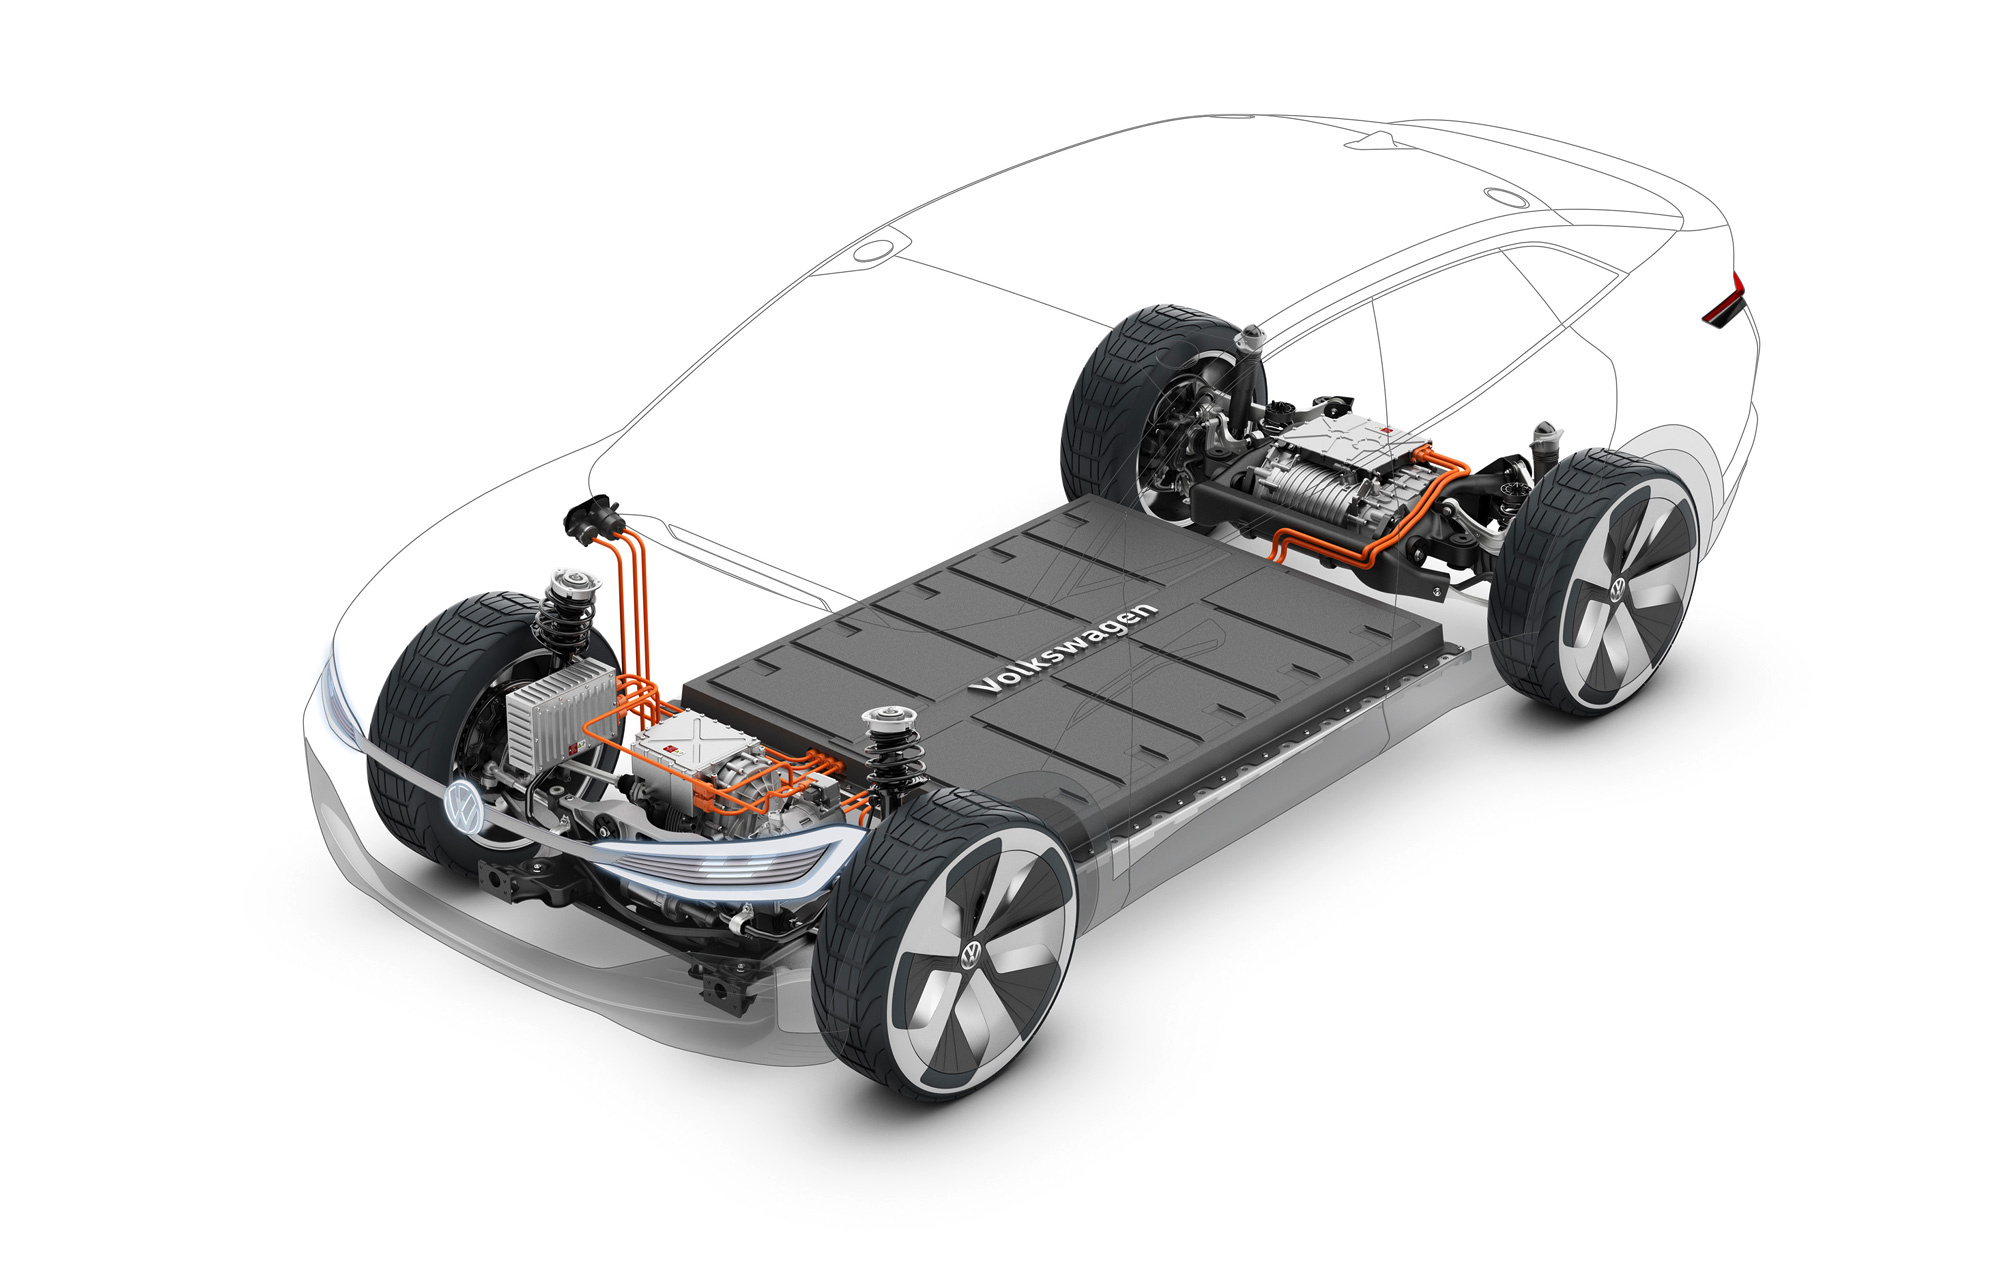 VOLKSWAGEN I.D. CROZZ electric